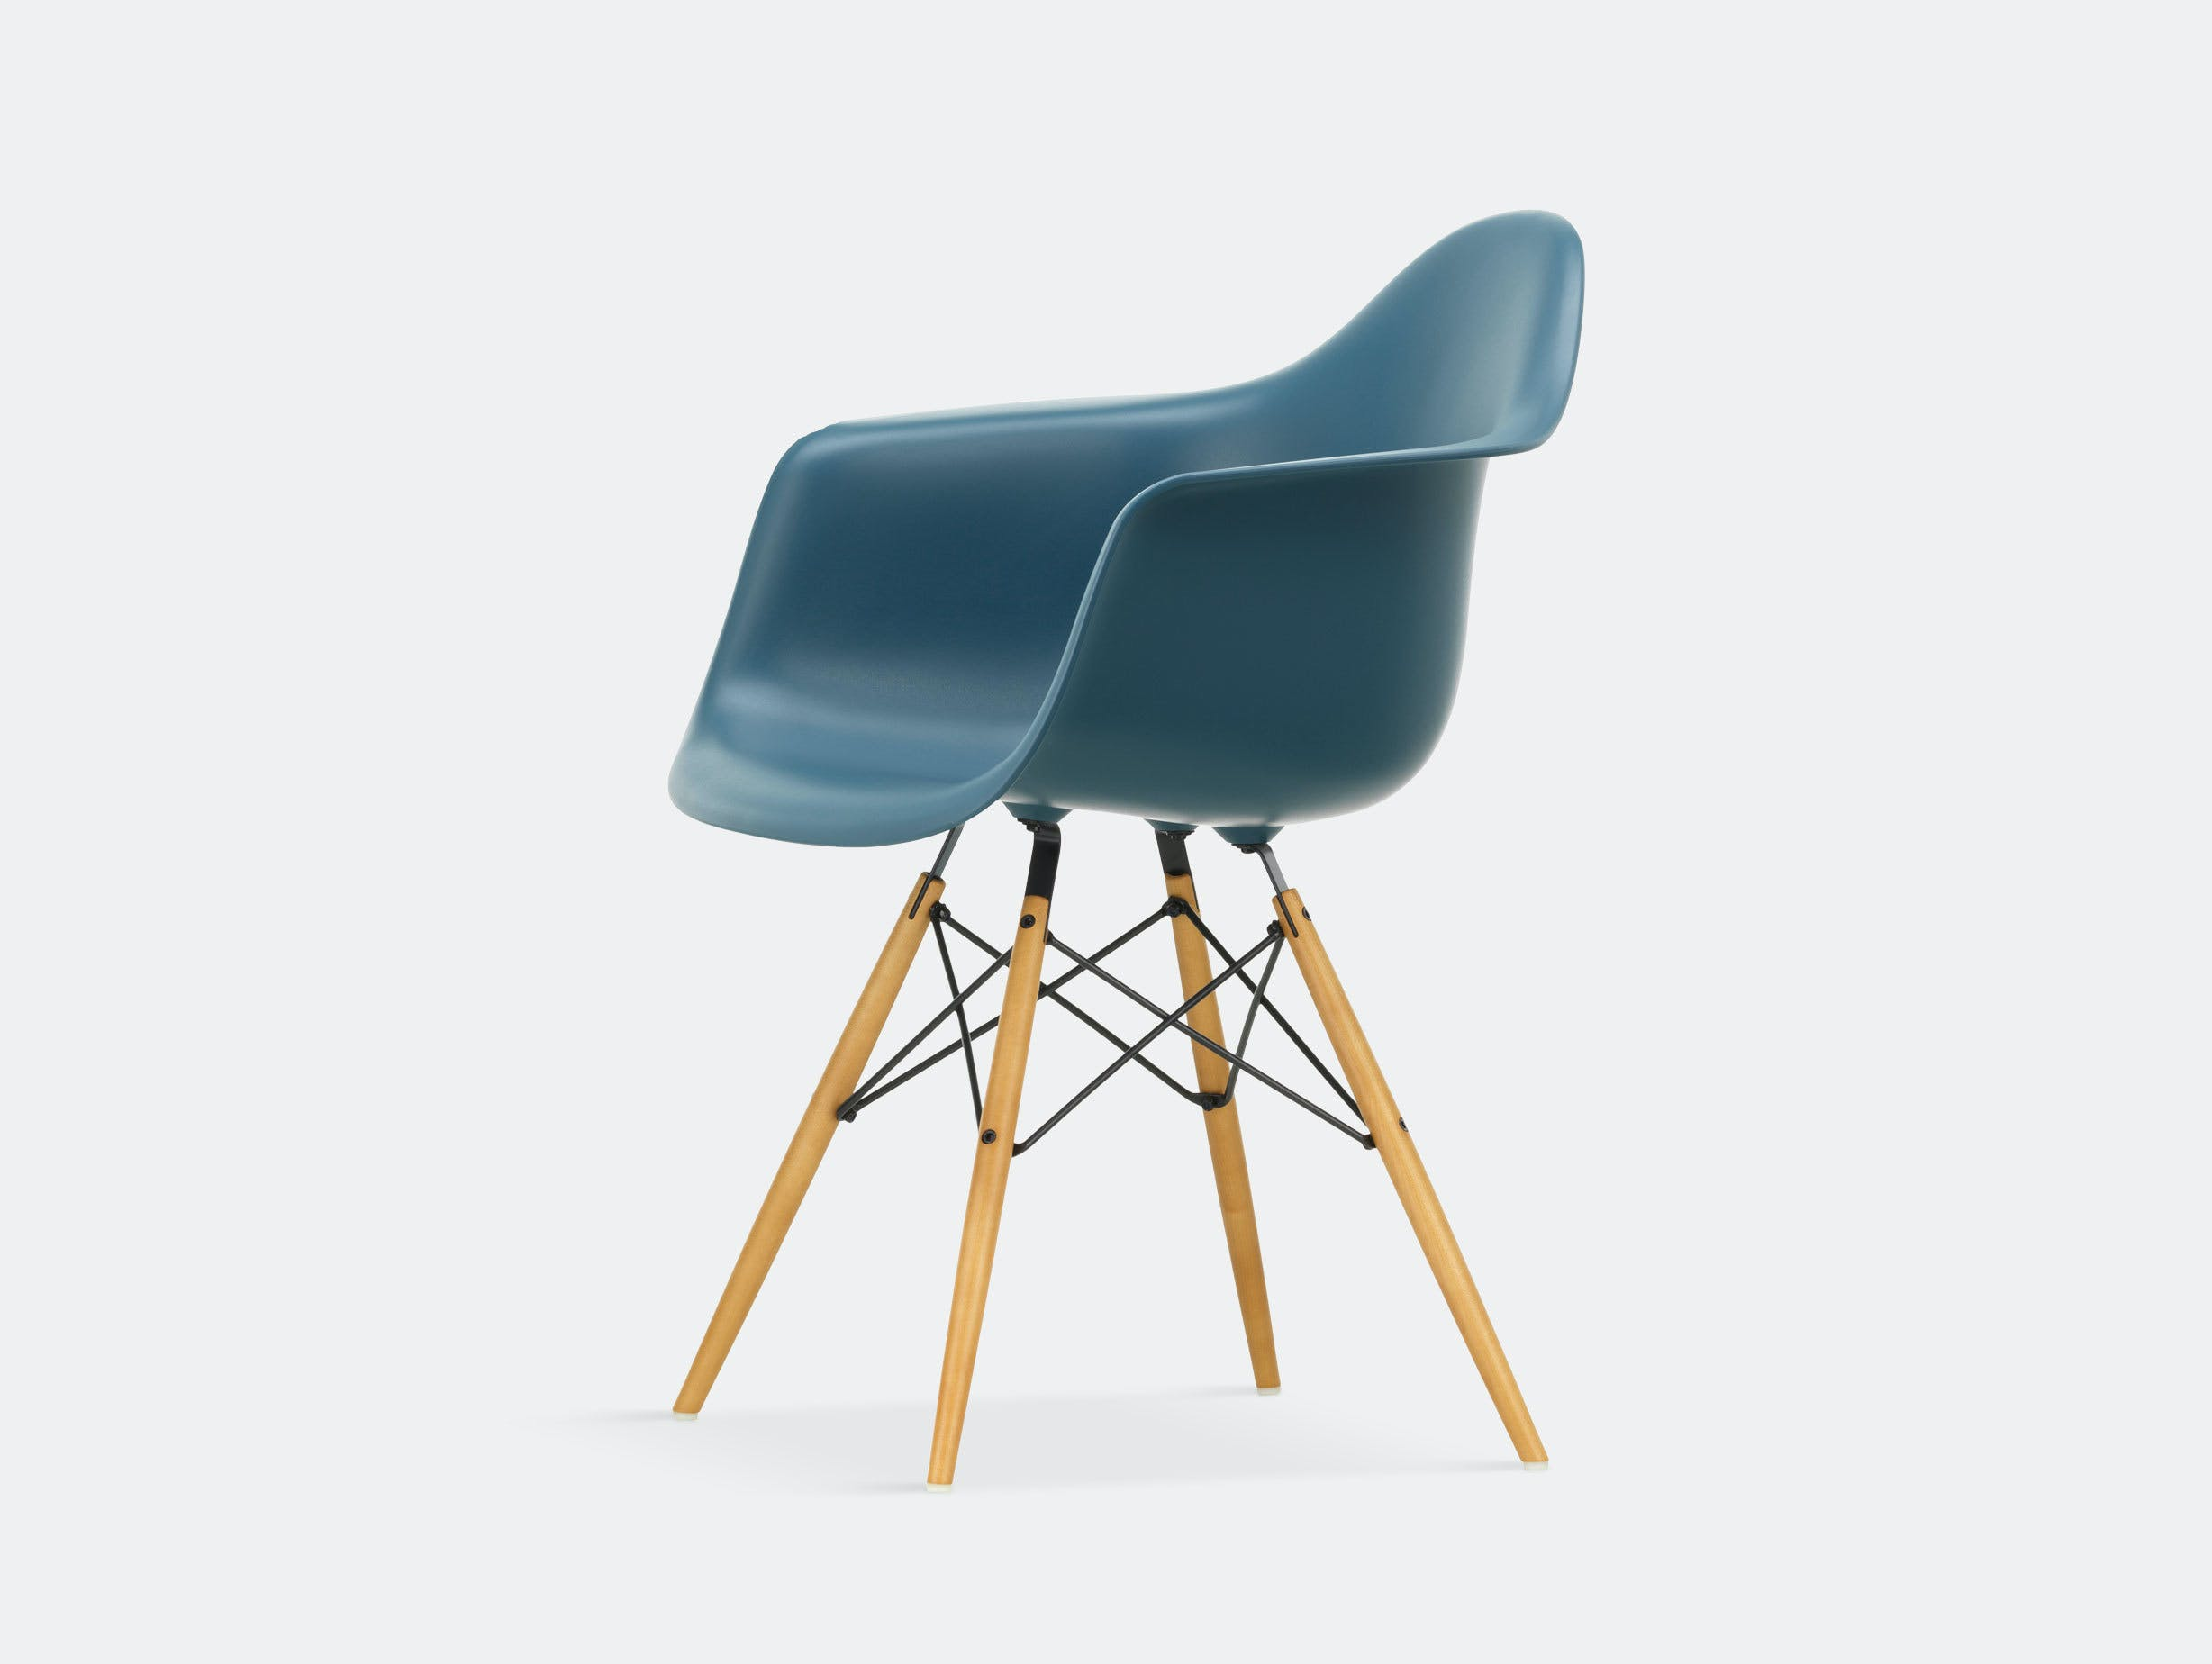 Vitra Eames Plastic Armchair DAW sea blue golden maple legs